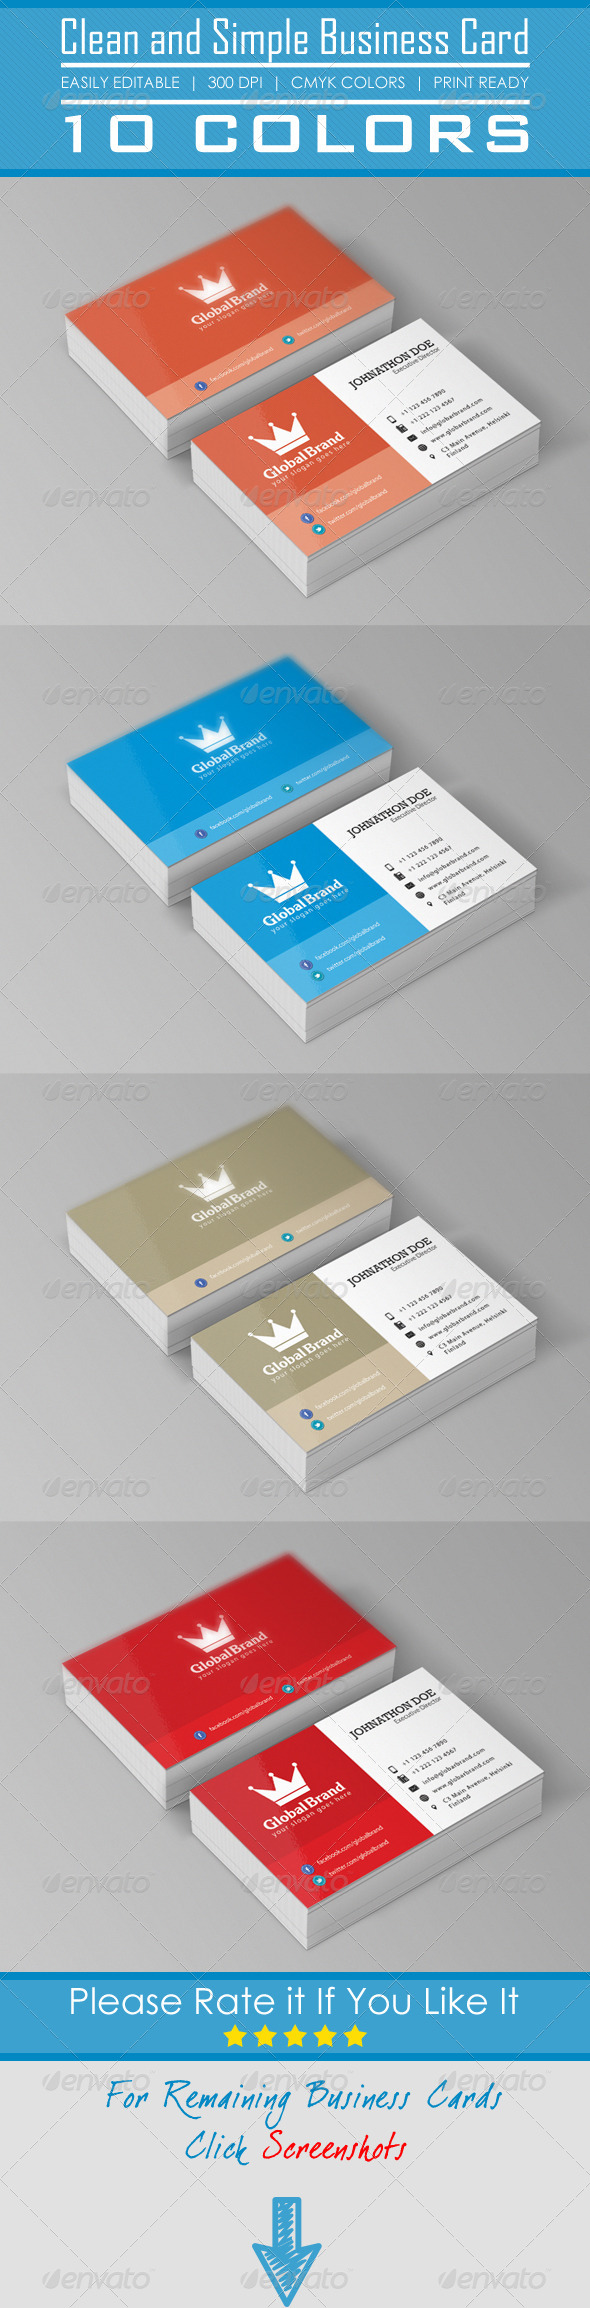 Clean and Simple Business Card - Corporate Business Cards